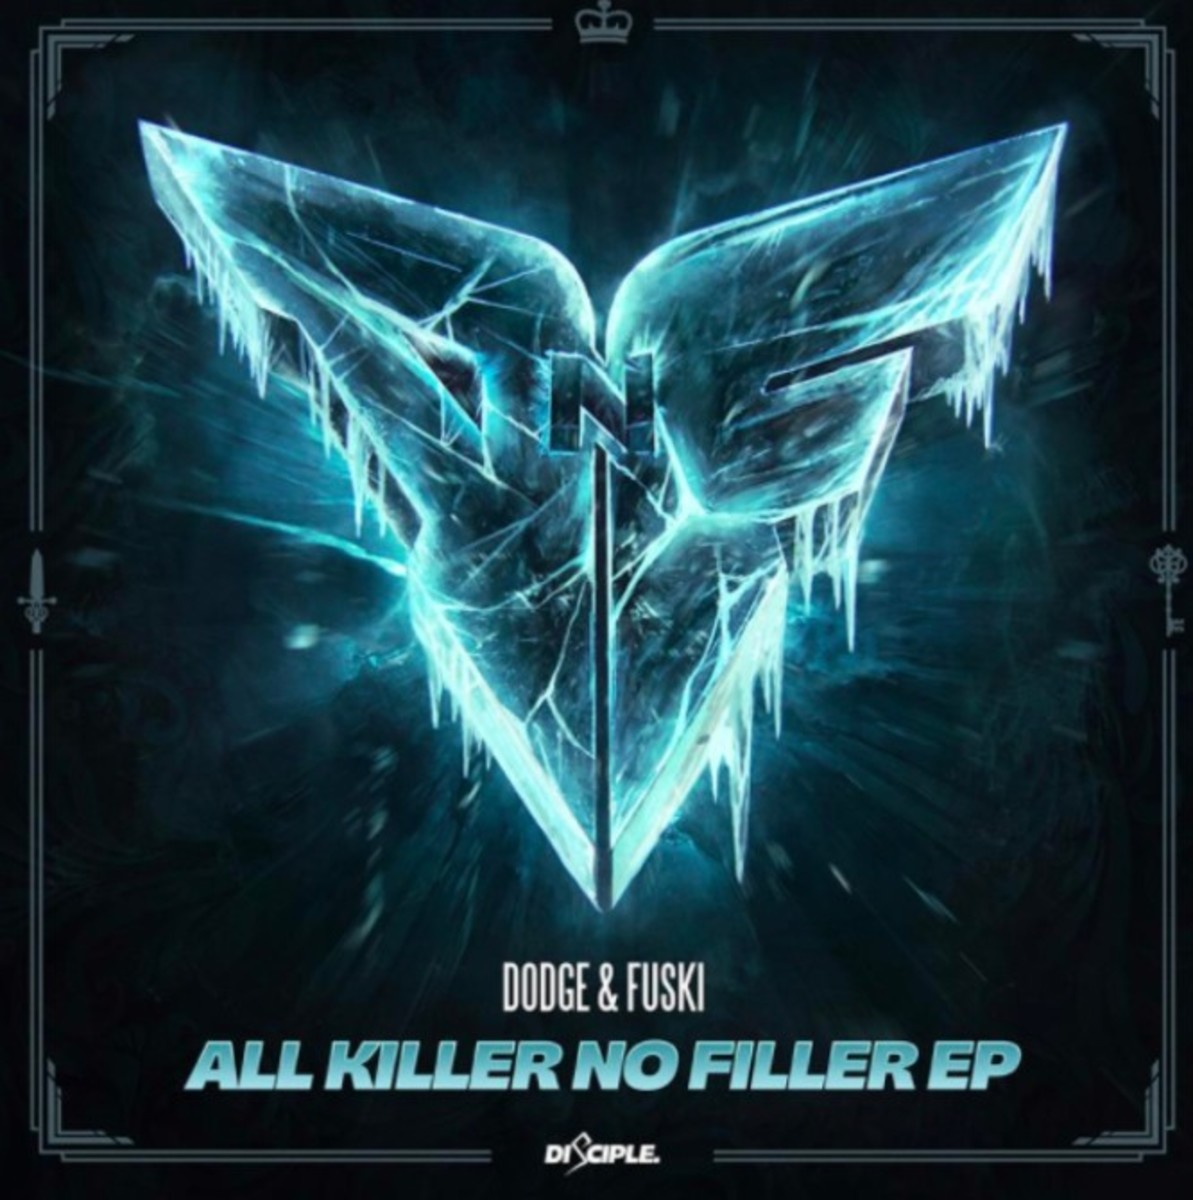 All Killer No Filler EP - Dodge & Fuski